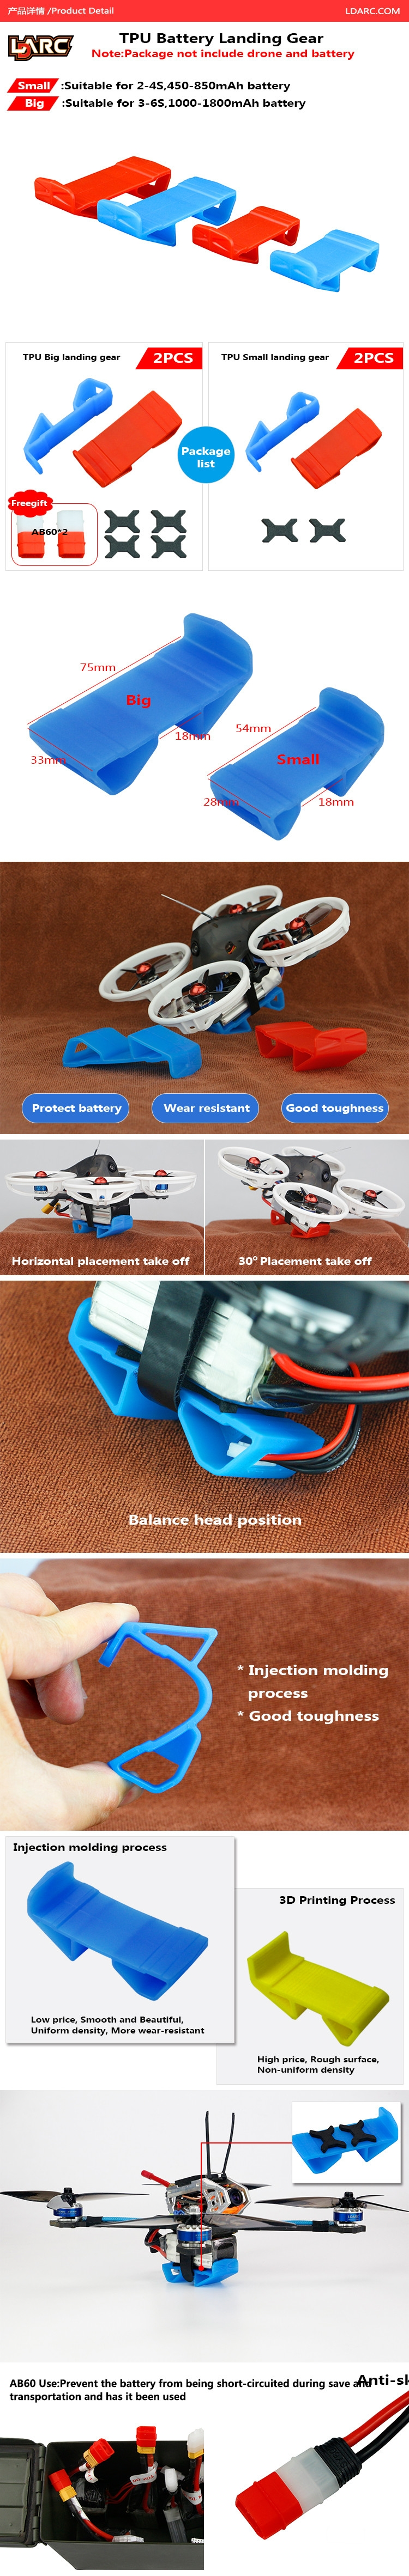 2 PCS KINGKONG/LDARC RC Drone Small Size Battery TPU Landing Gear for 2-4S 450-850mAh Lipo Battery